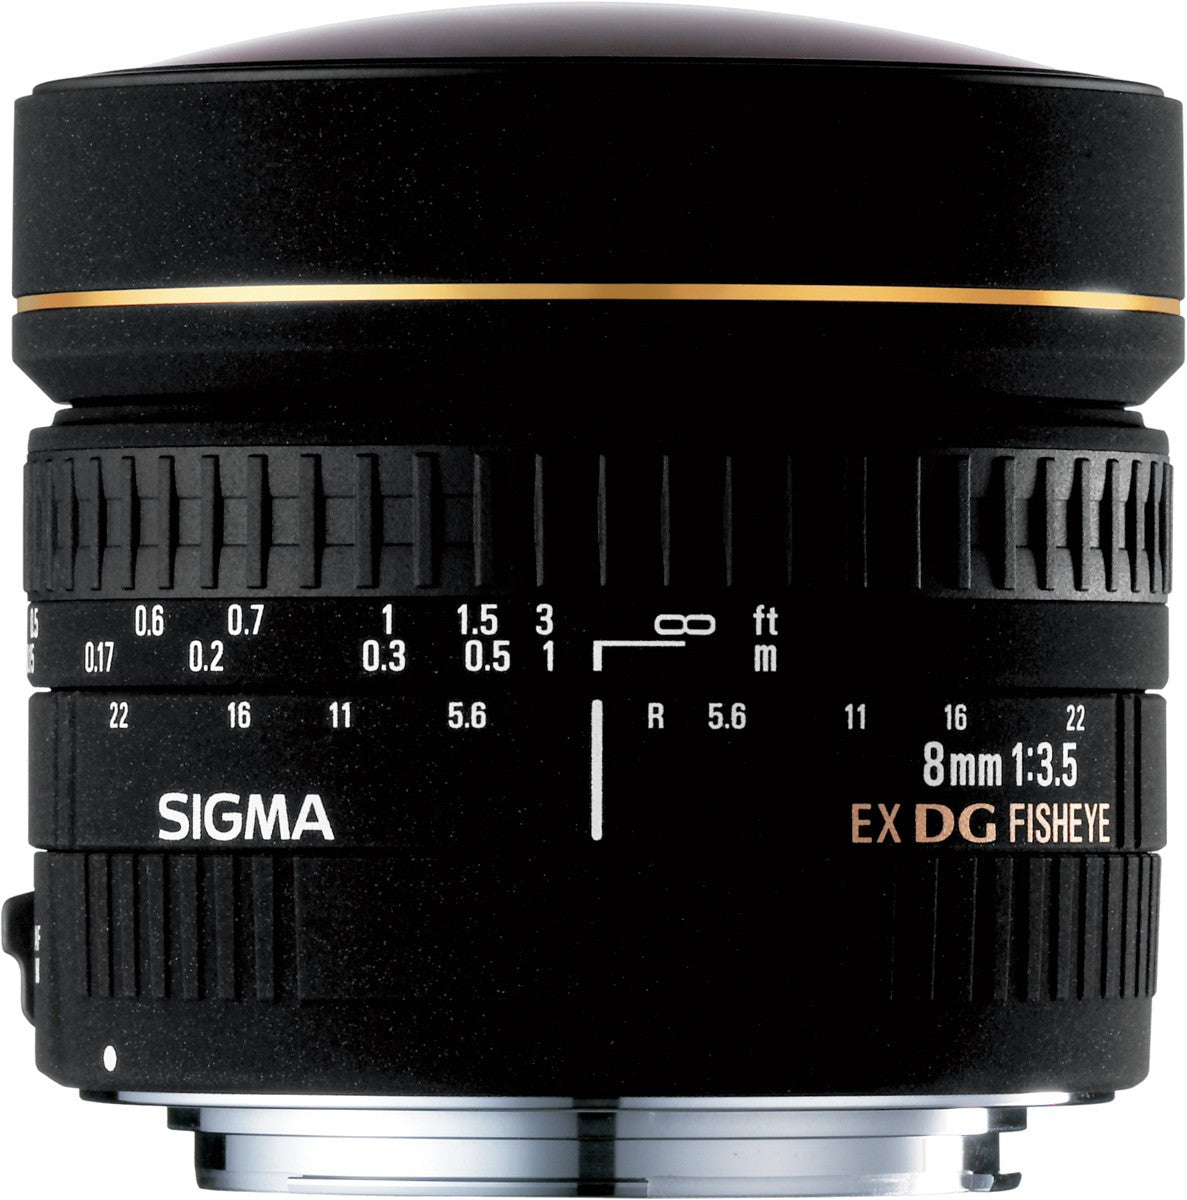 Sigma 8mm F3.5 EX DG Circular Fish-Eye (Nikon)